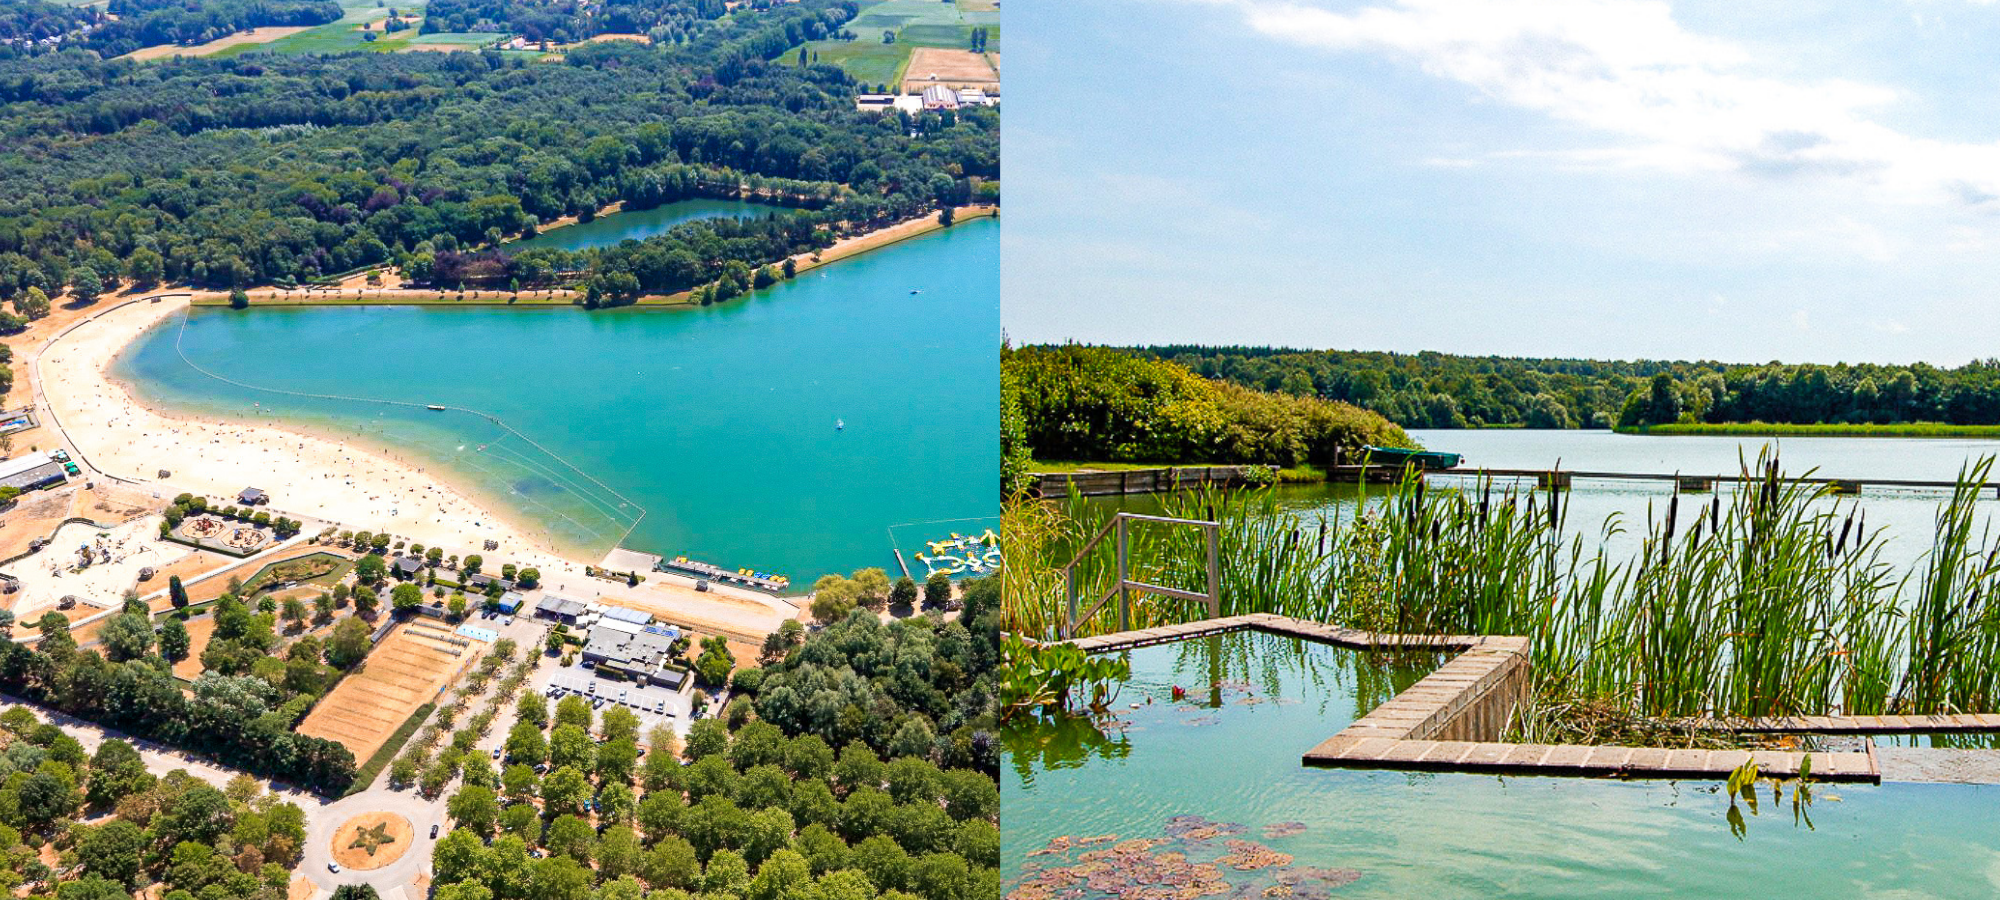 A large blue lake surrounded by trees and a sandy beach at De Ster in Sint Niklaas, Belgium